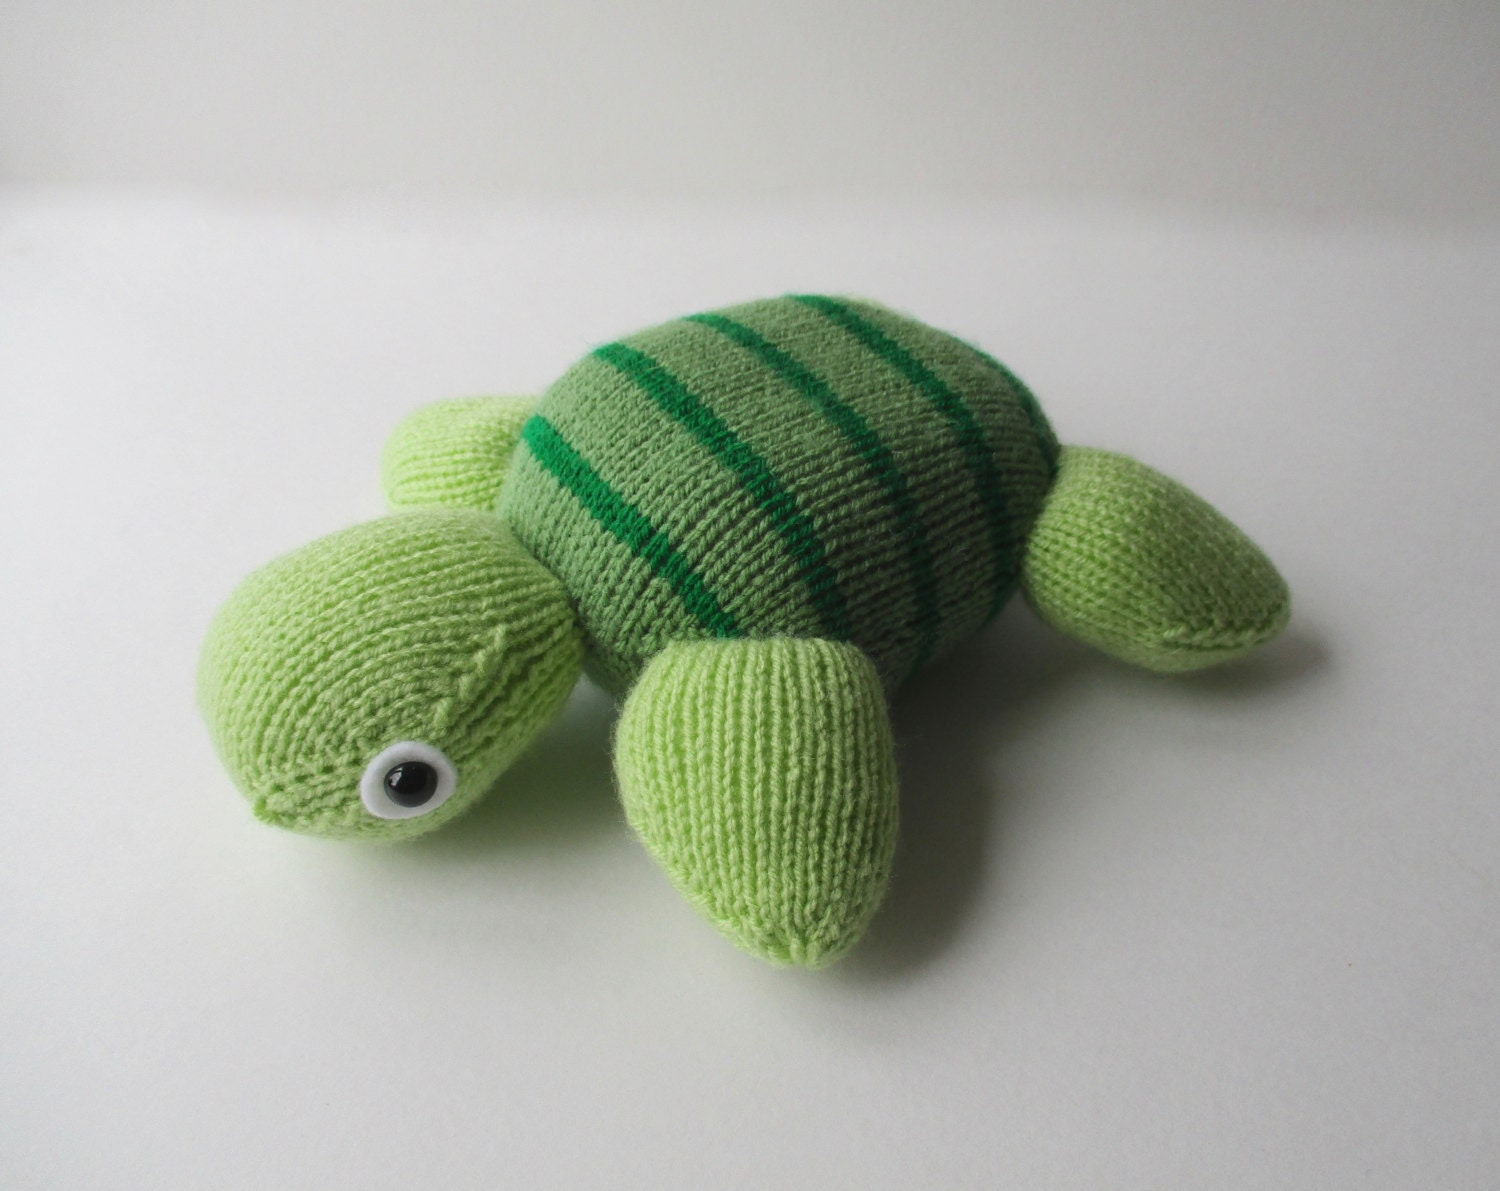 Topsy Turvy Turtle toy knitting pattern